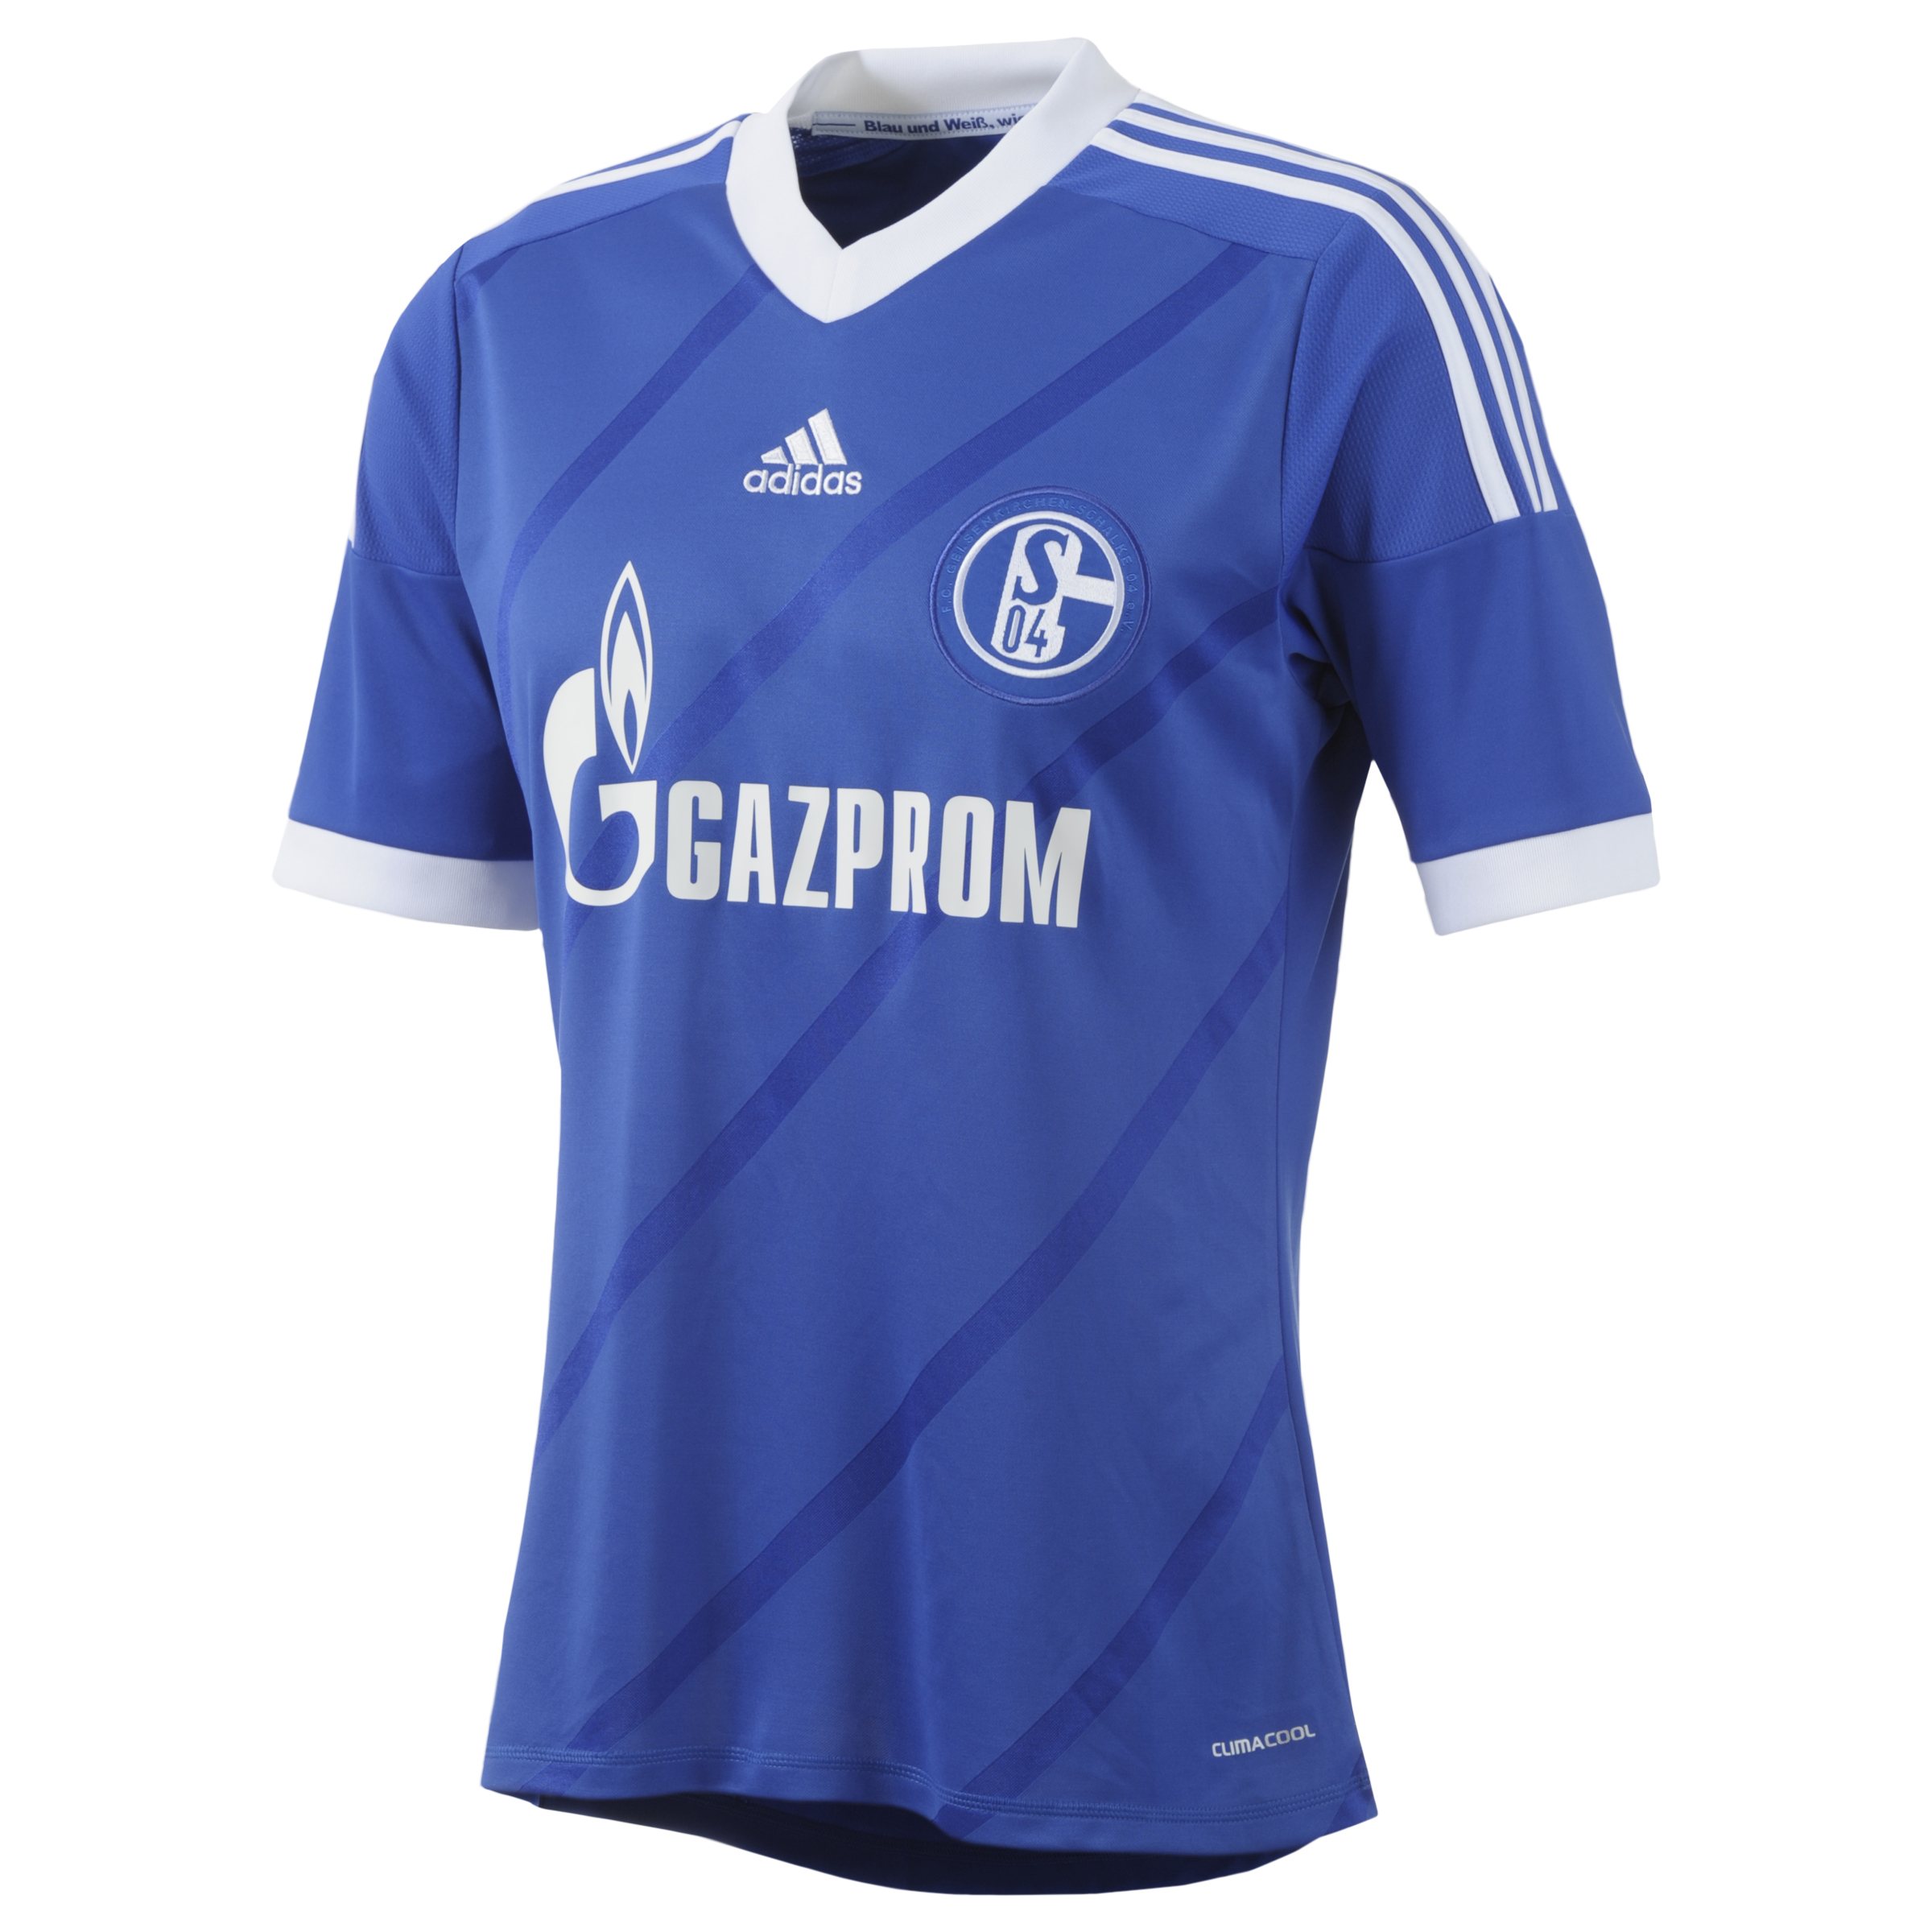 Schalke 04 Home Shirt 2013/14